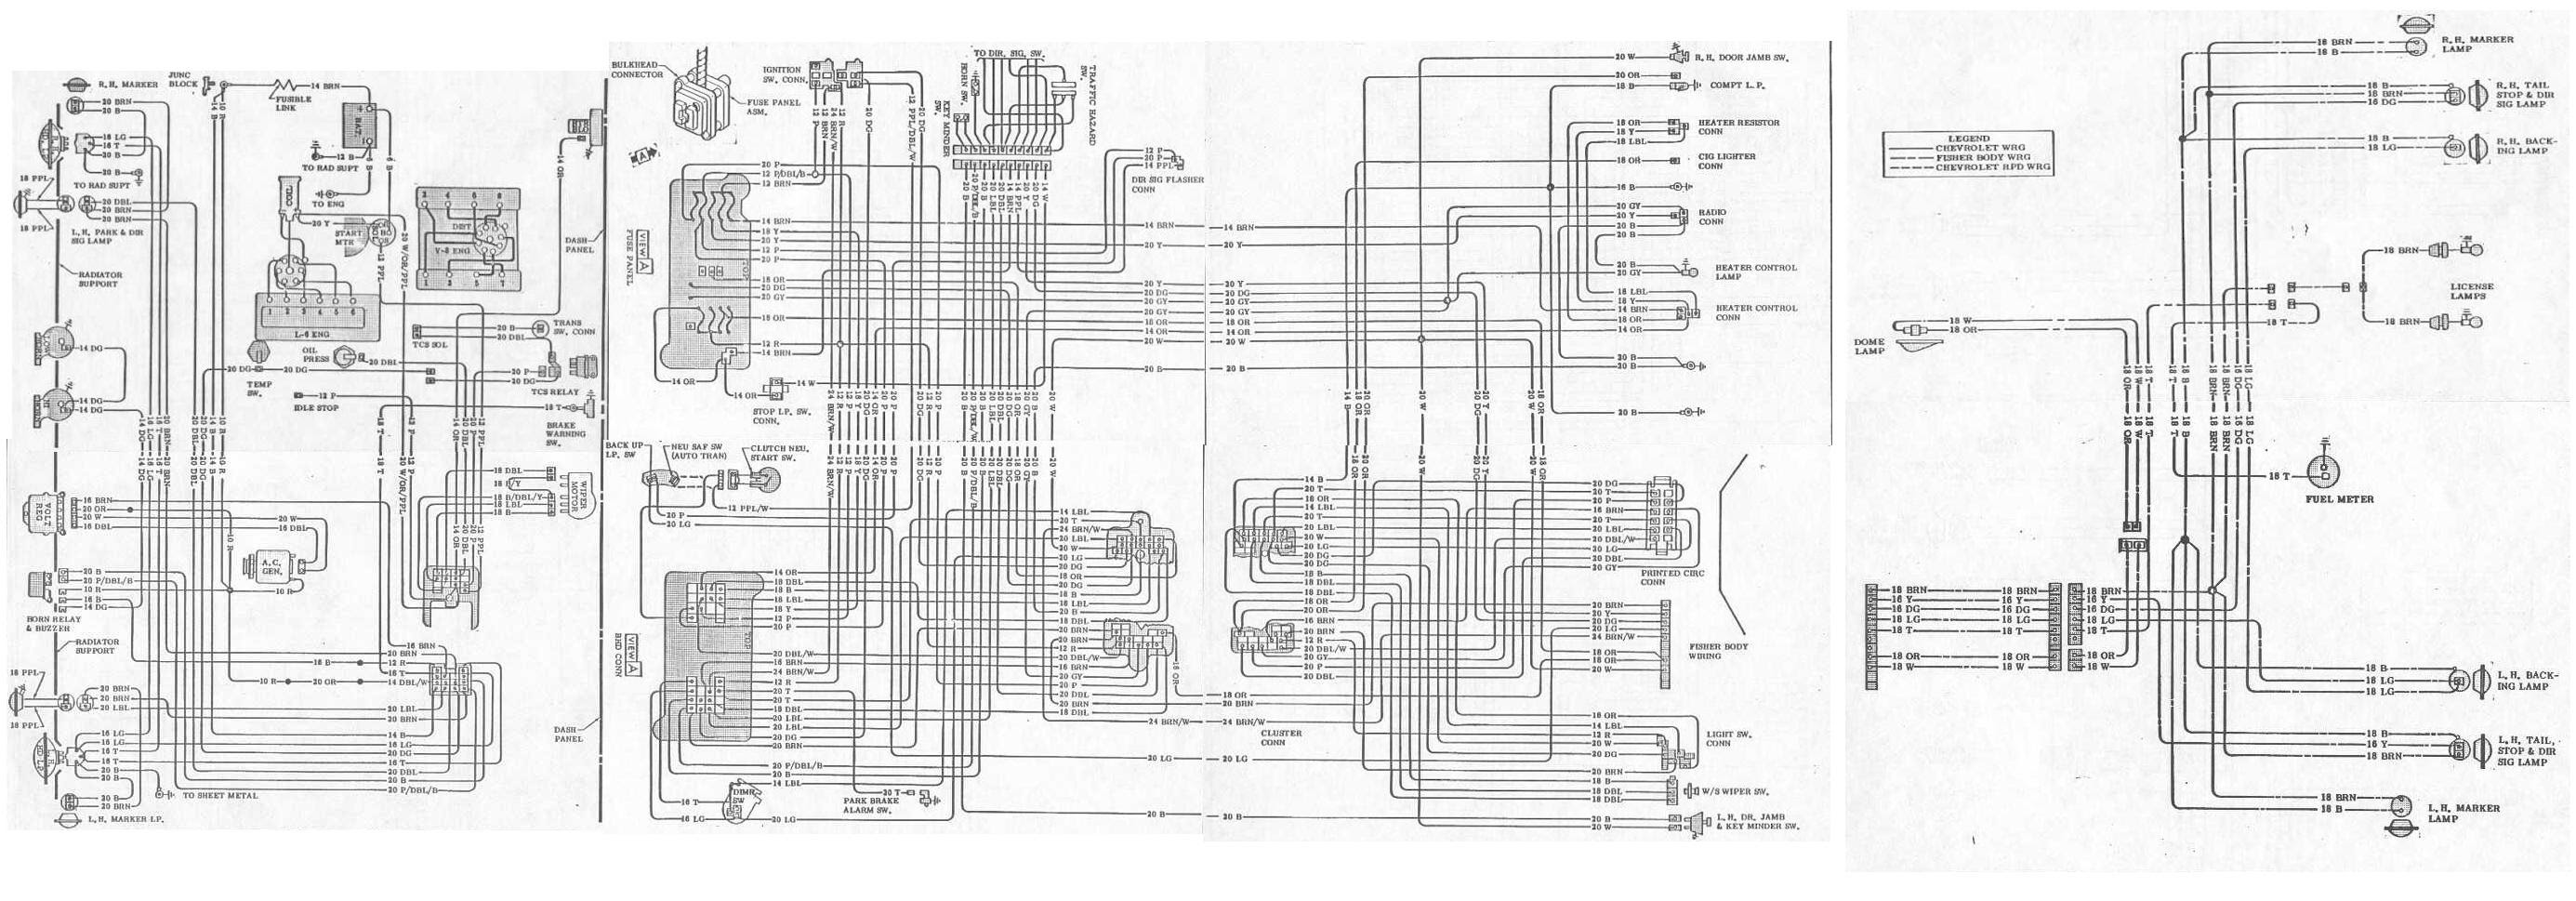 Diagram 1969 Pontiac Gto Wiring Diagram Full Version Hd Quality Wiring Diagram Riverdiagram Axtem Gomes Fr